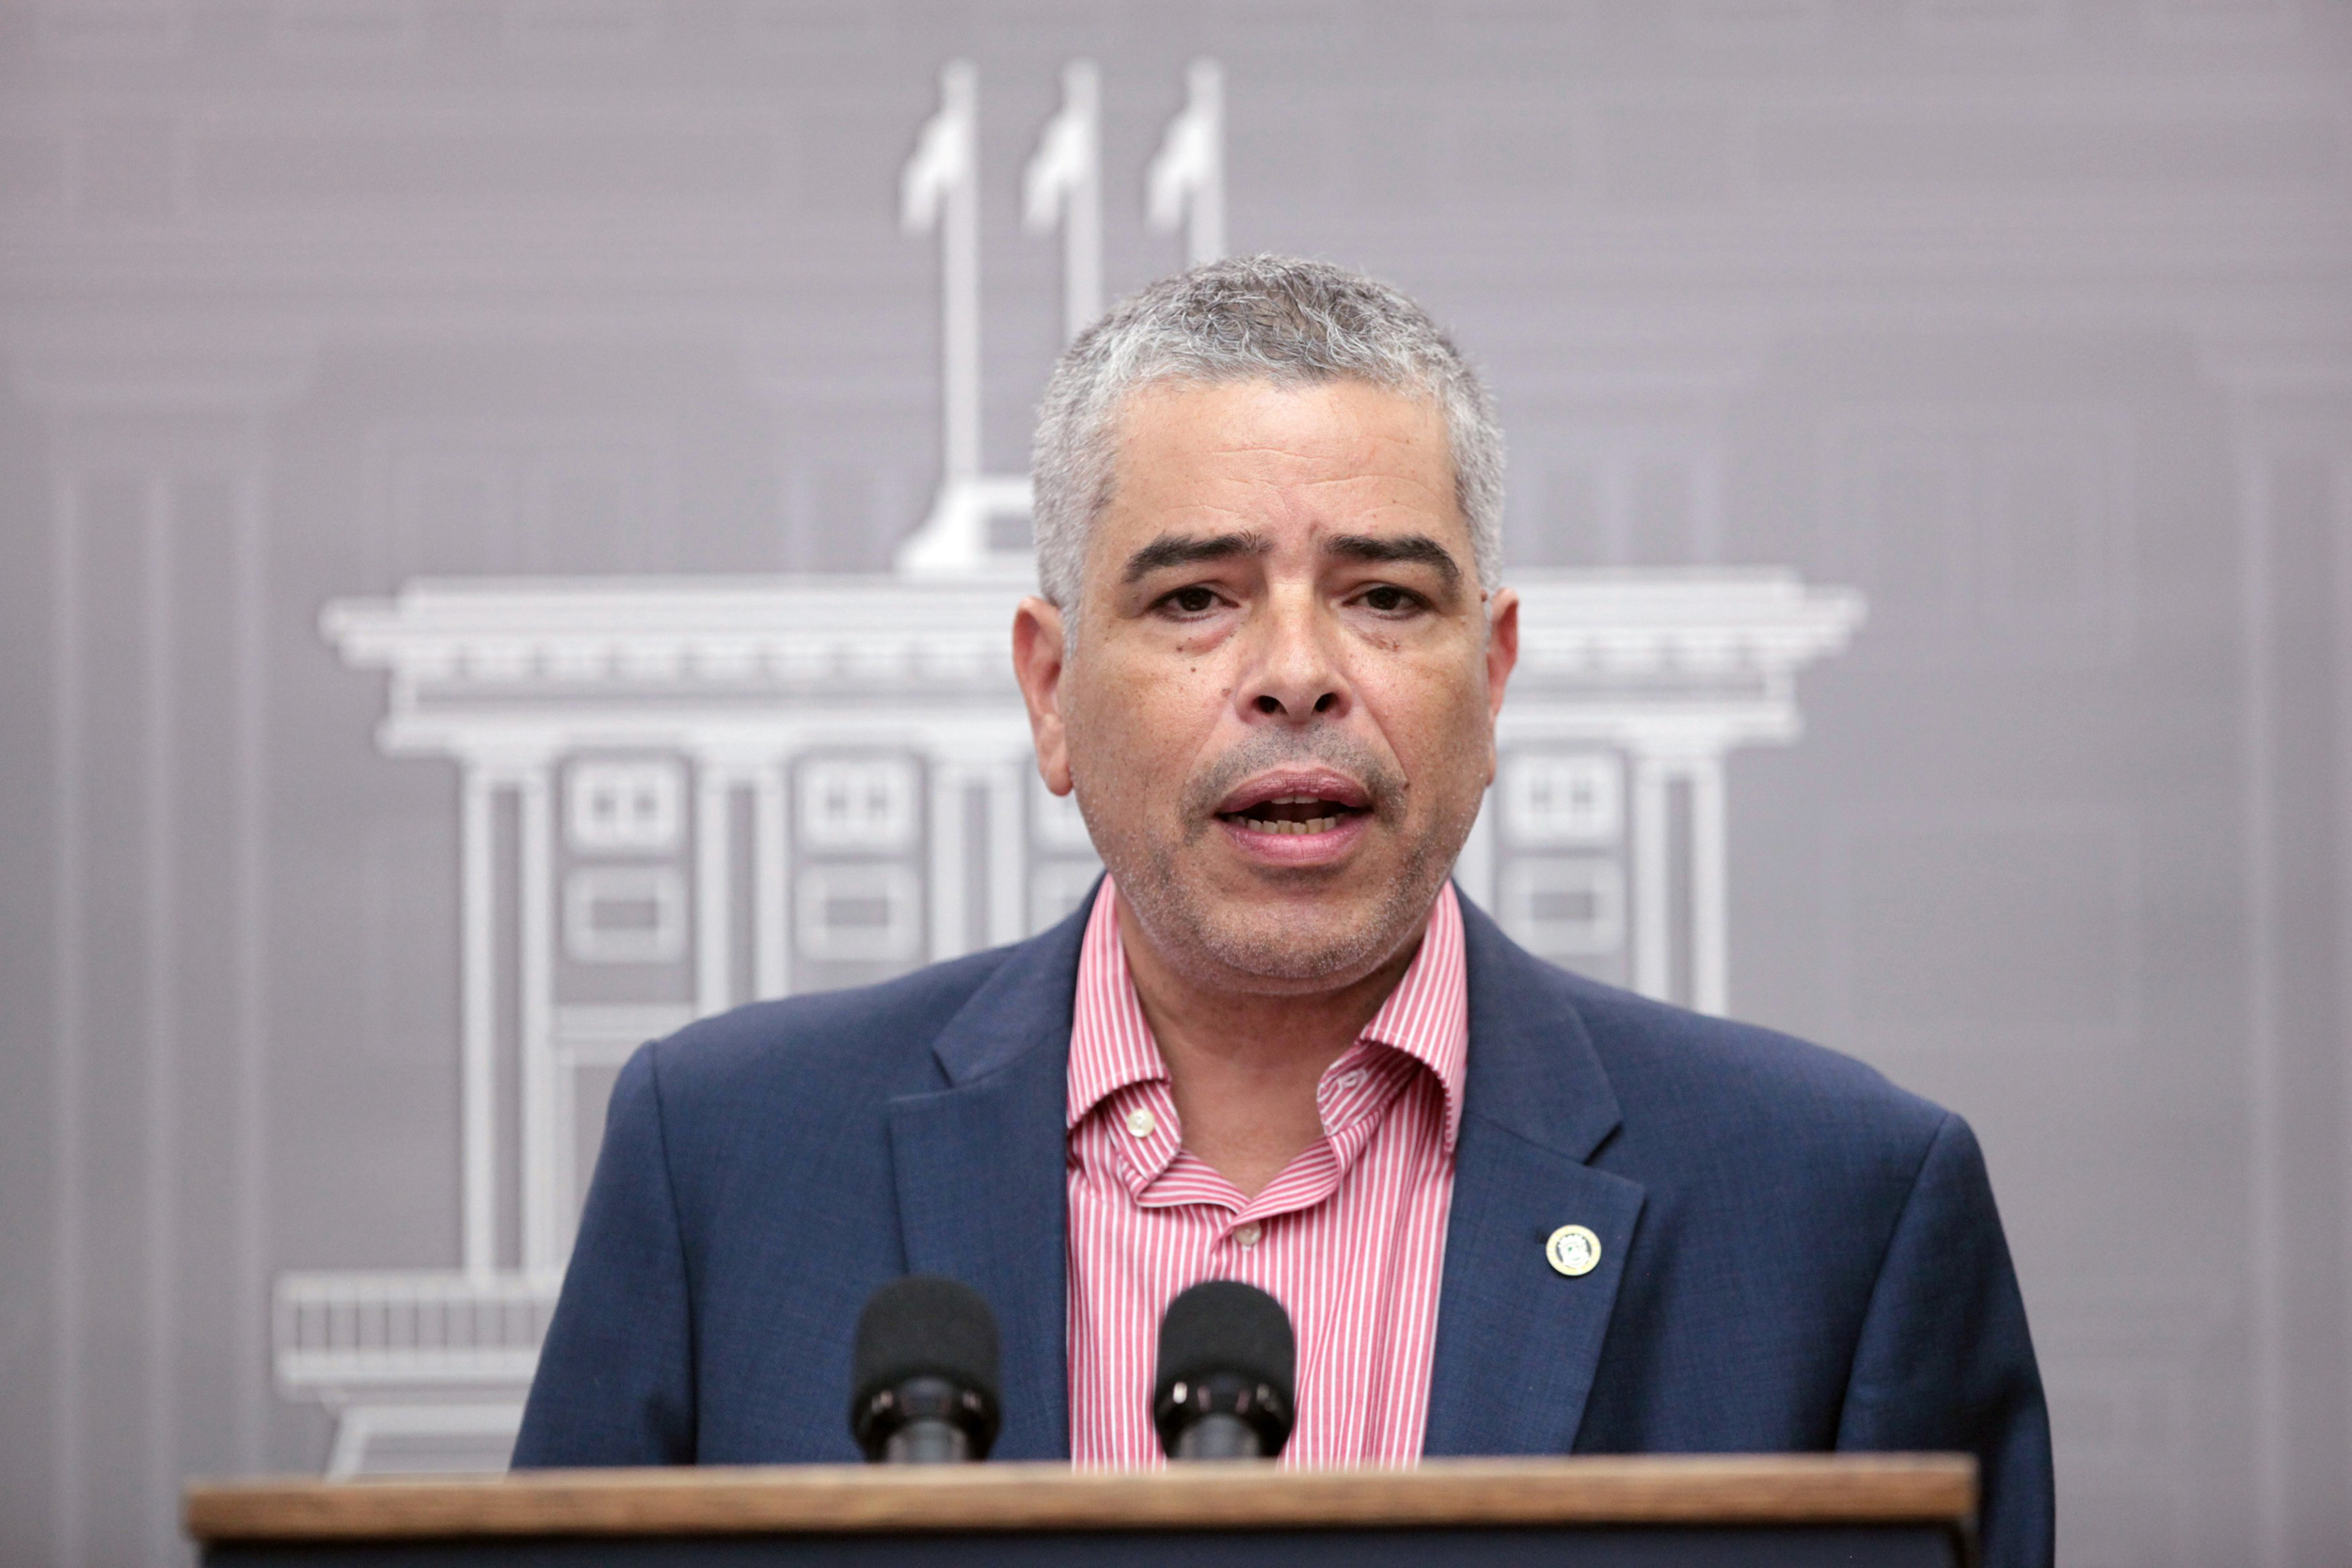 Image: Ramos, executive director of the Electric Power Authority of Puerto Rico (PREPA), addresses the media during a news conference, in San Juan